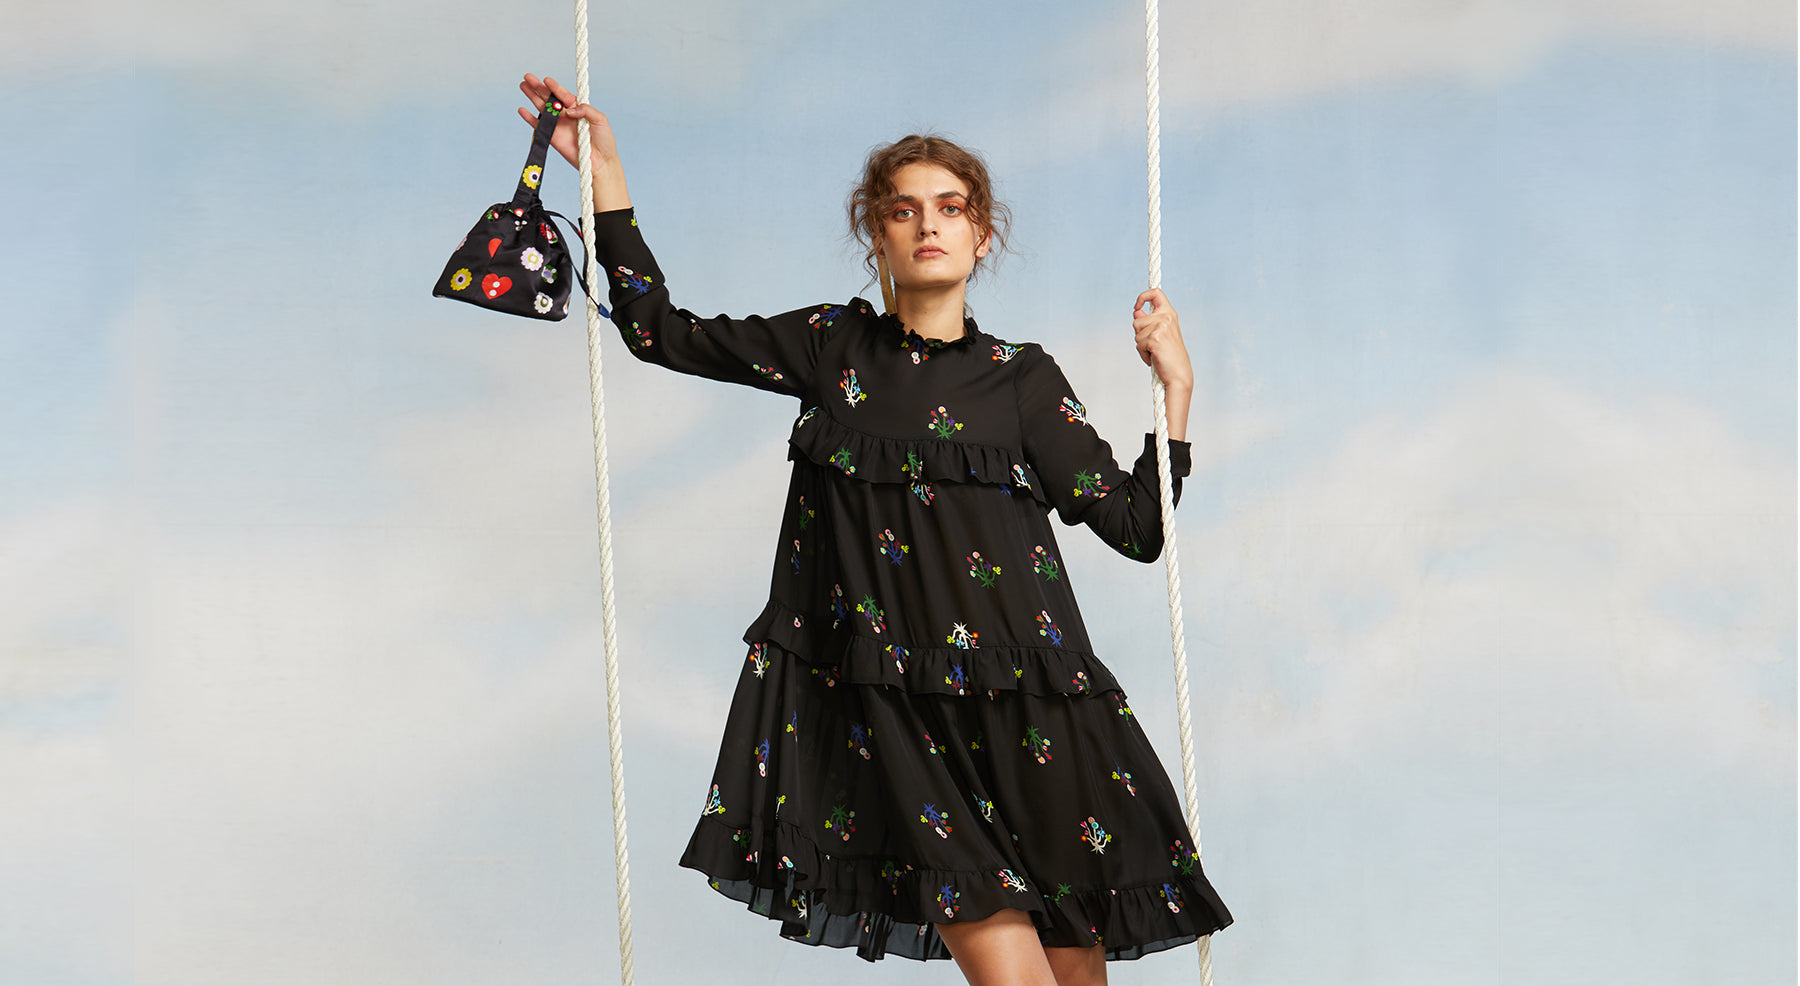 Image featuring a model swinging on a blue sky with clouds background wearing a tiered long sleeve knee length dress in a dar mini floral print.